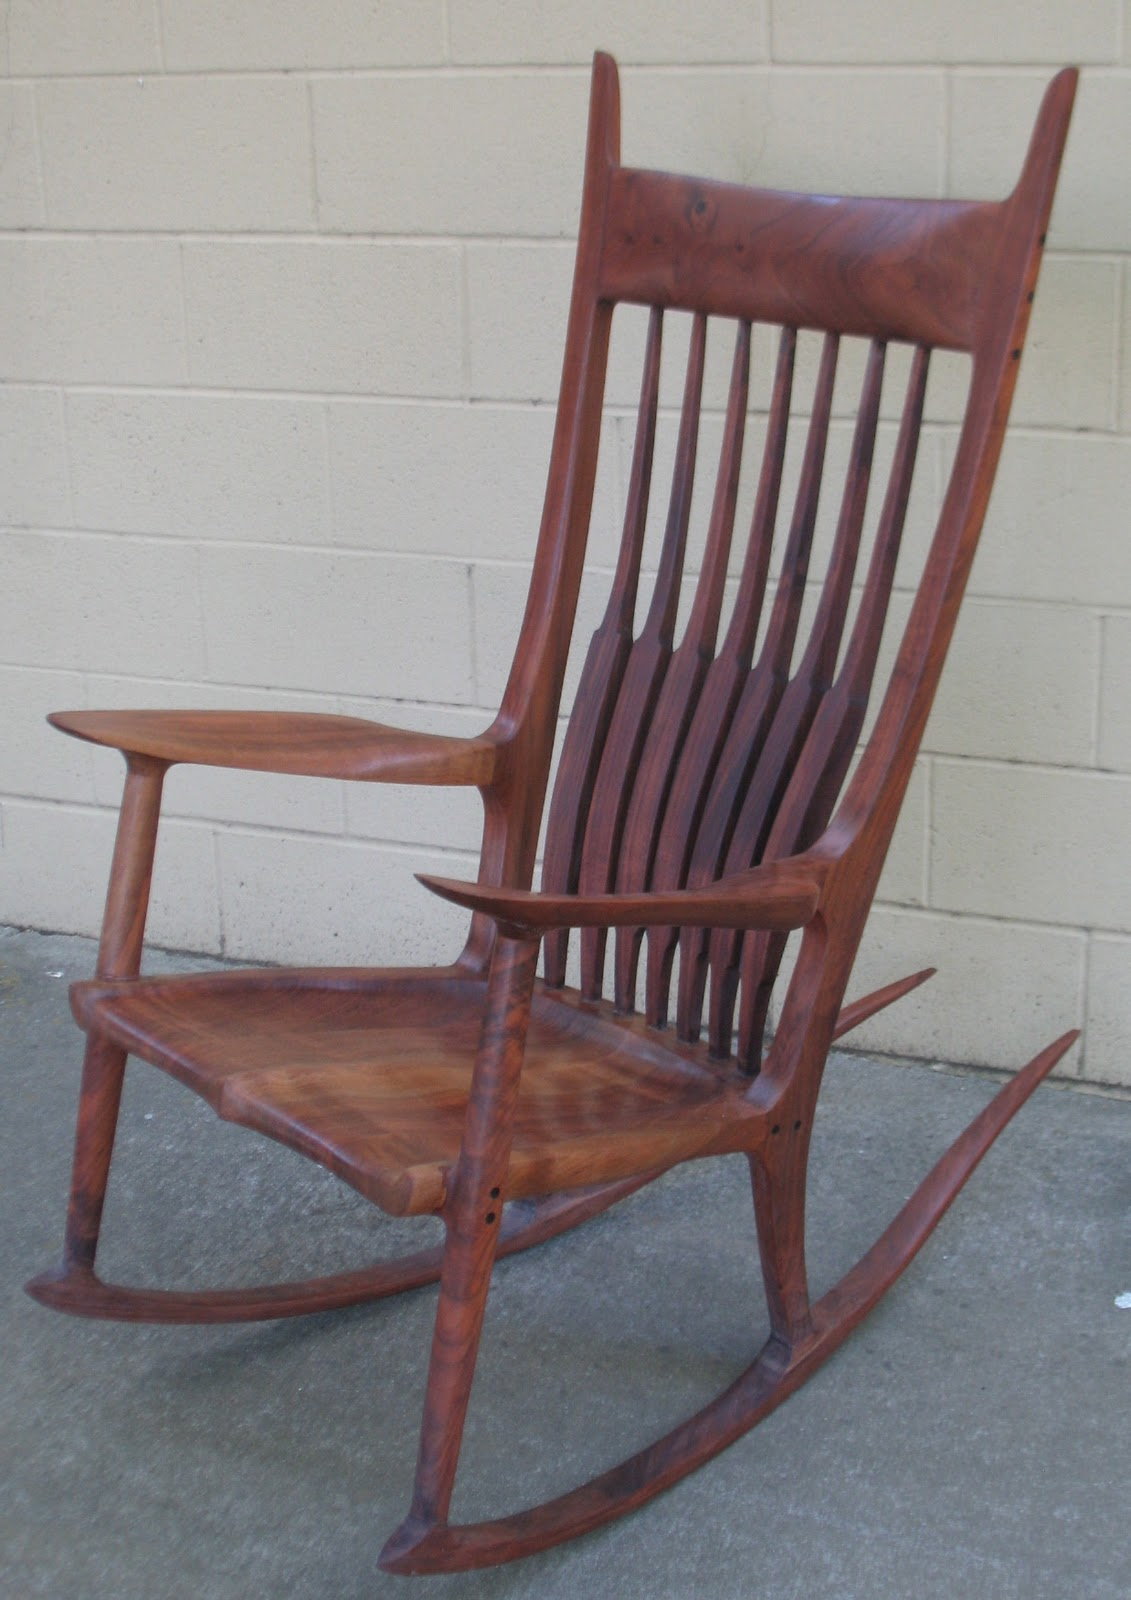 craftsman rocking chair styles best chairs for back pain the maloof style